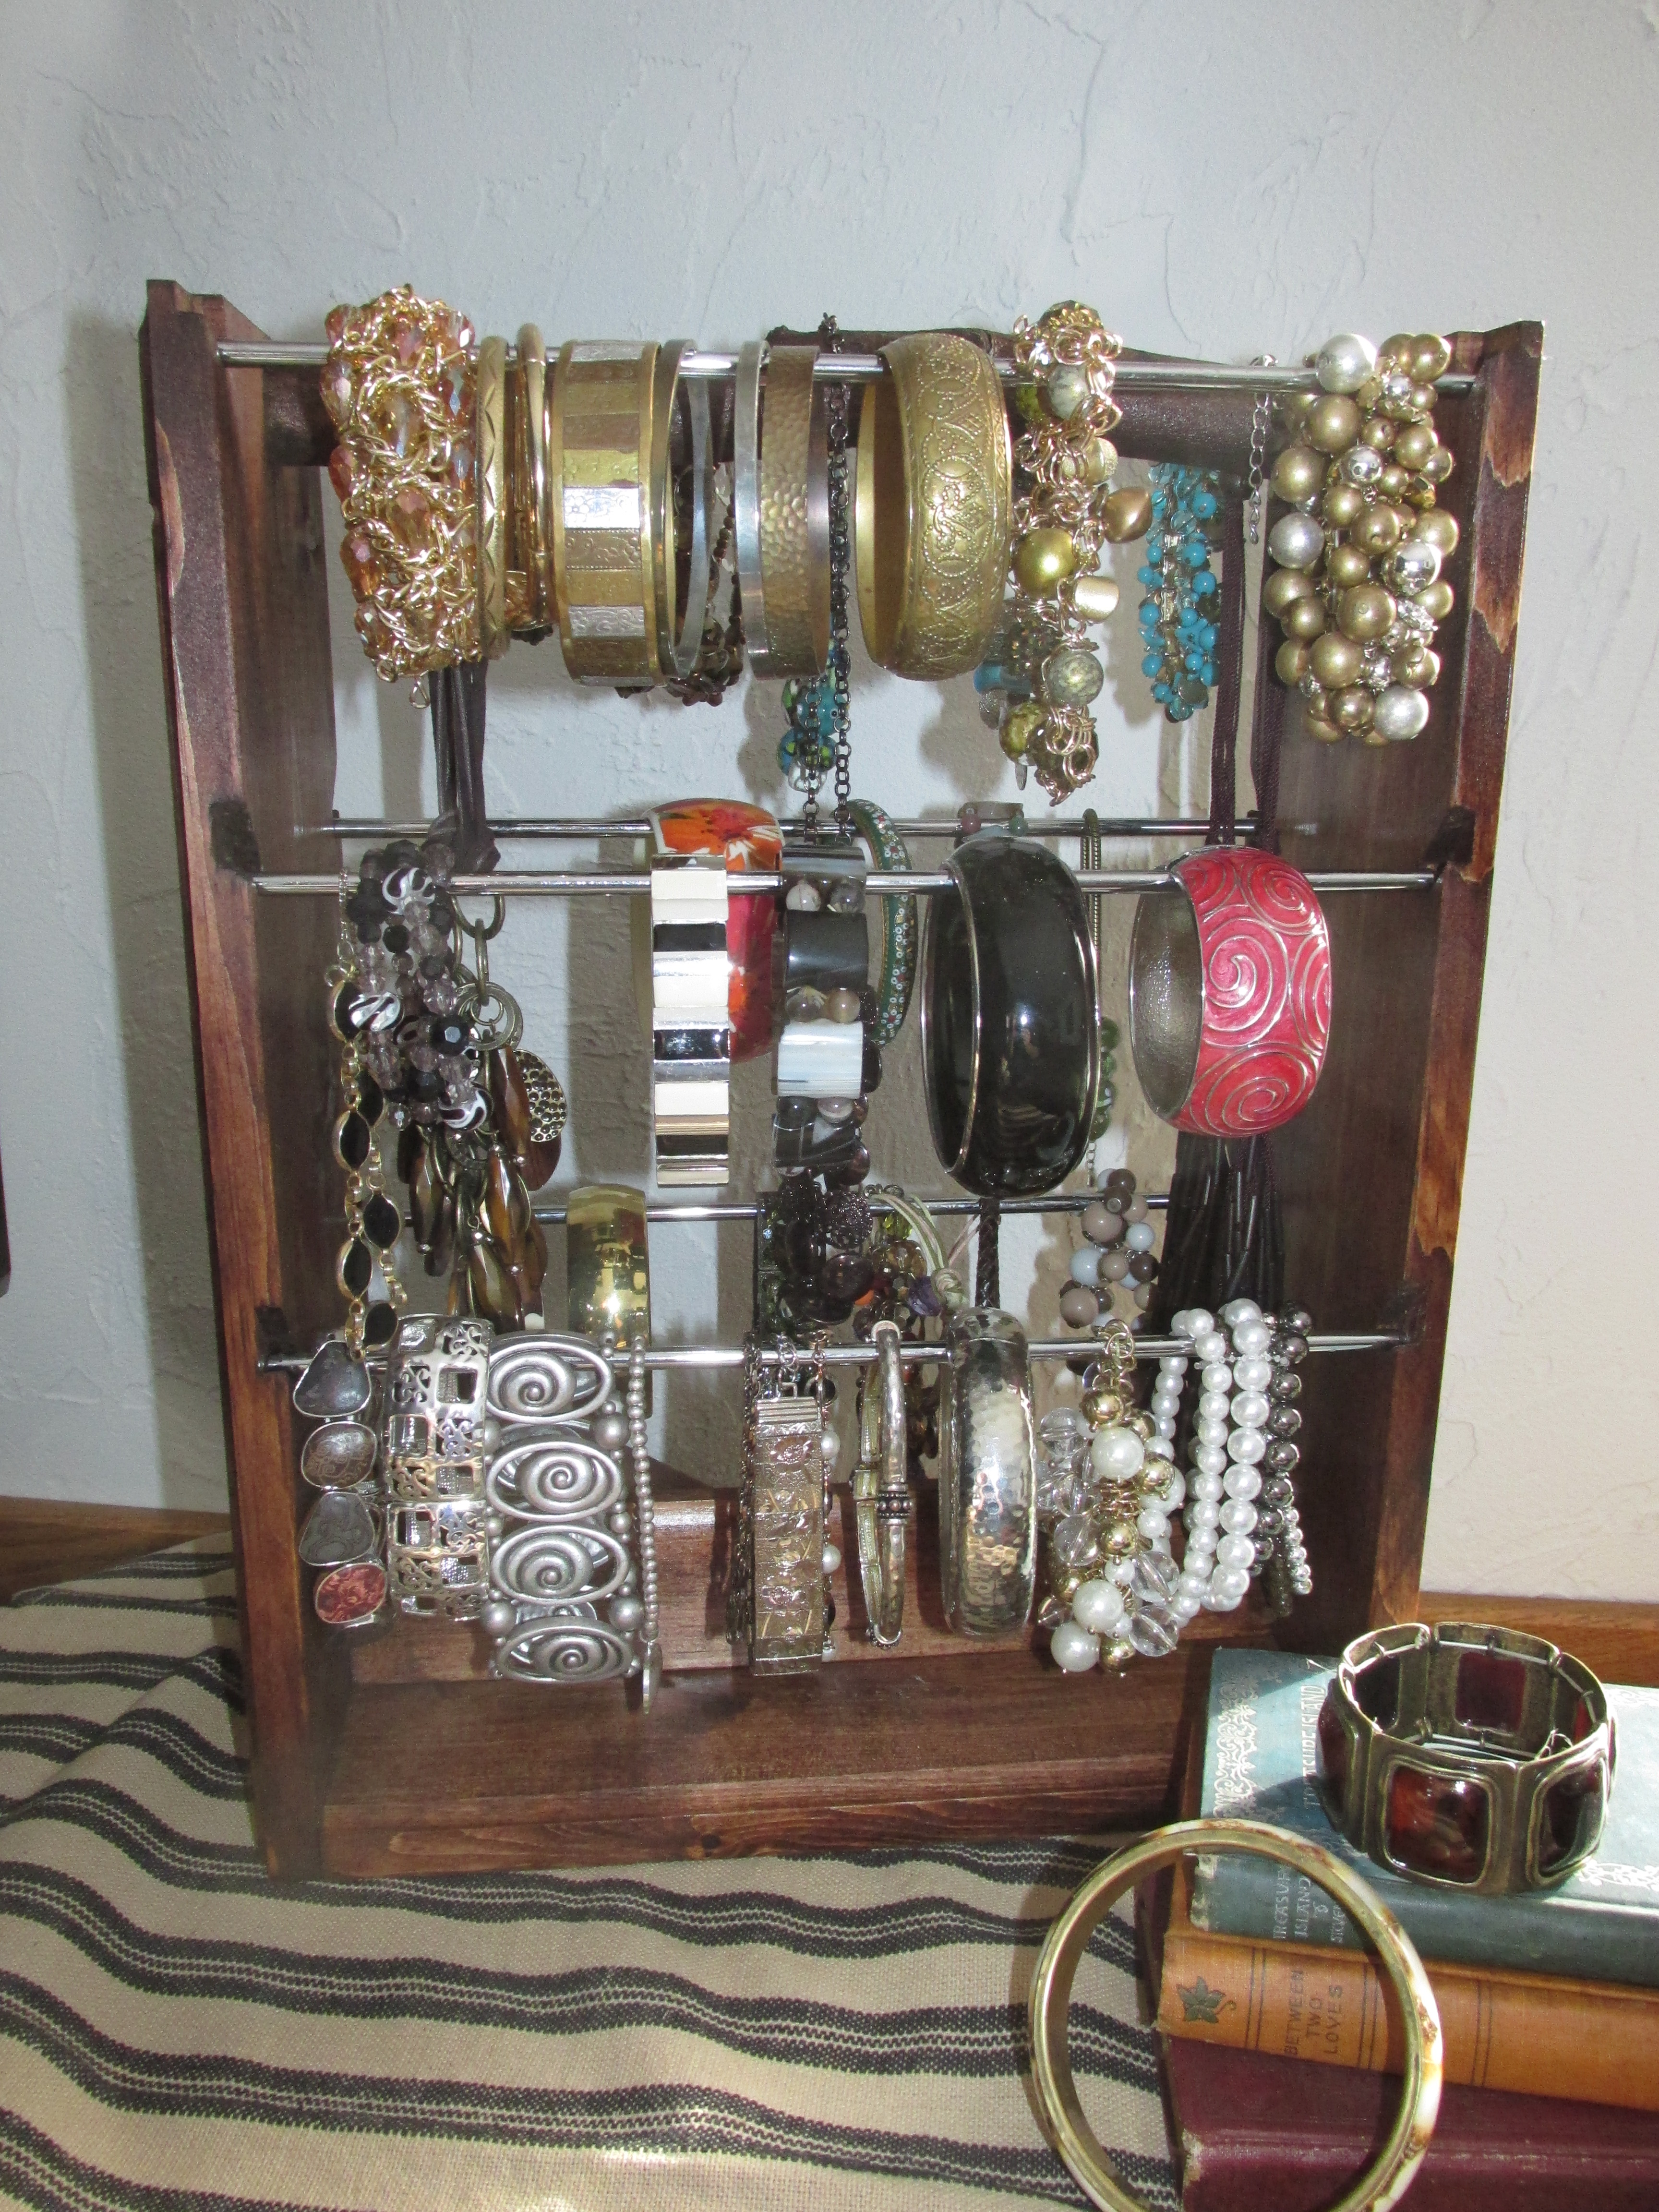 Picture of Bracelet Organizer That Holds Dozens of Bracelets and Keeps Them All VISIBLE to Choose!